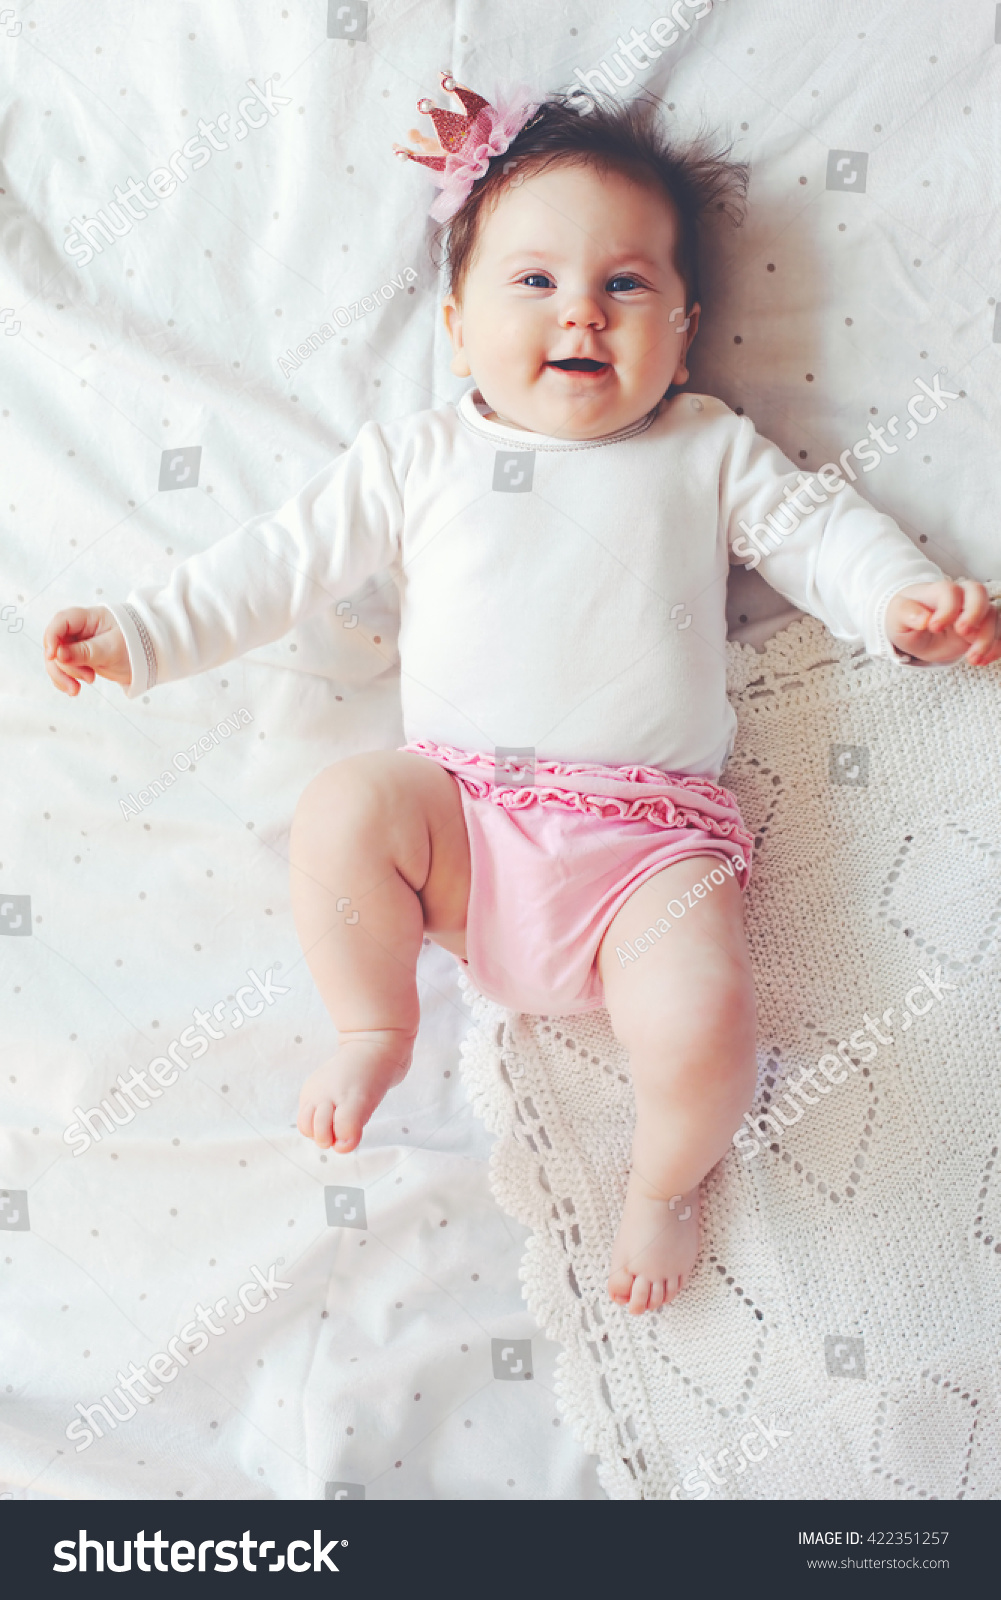 portrait 4 month cute baby girl stock photo (edit now)- shutterstock